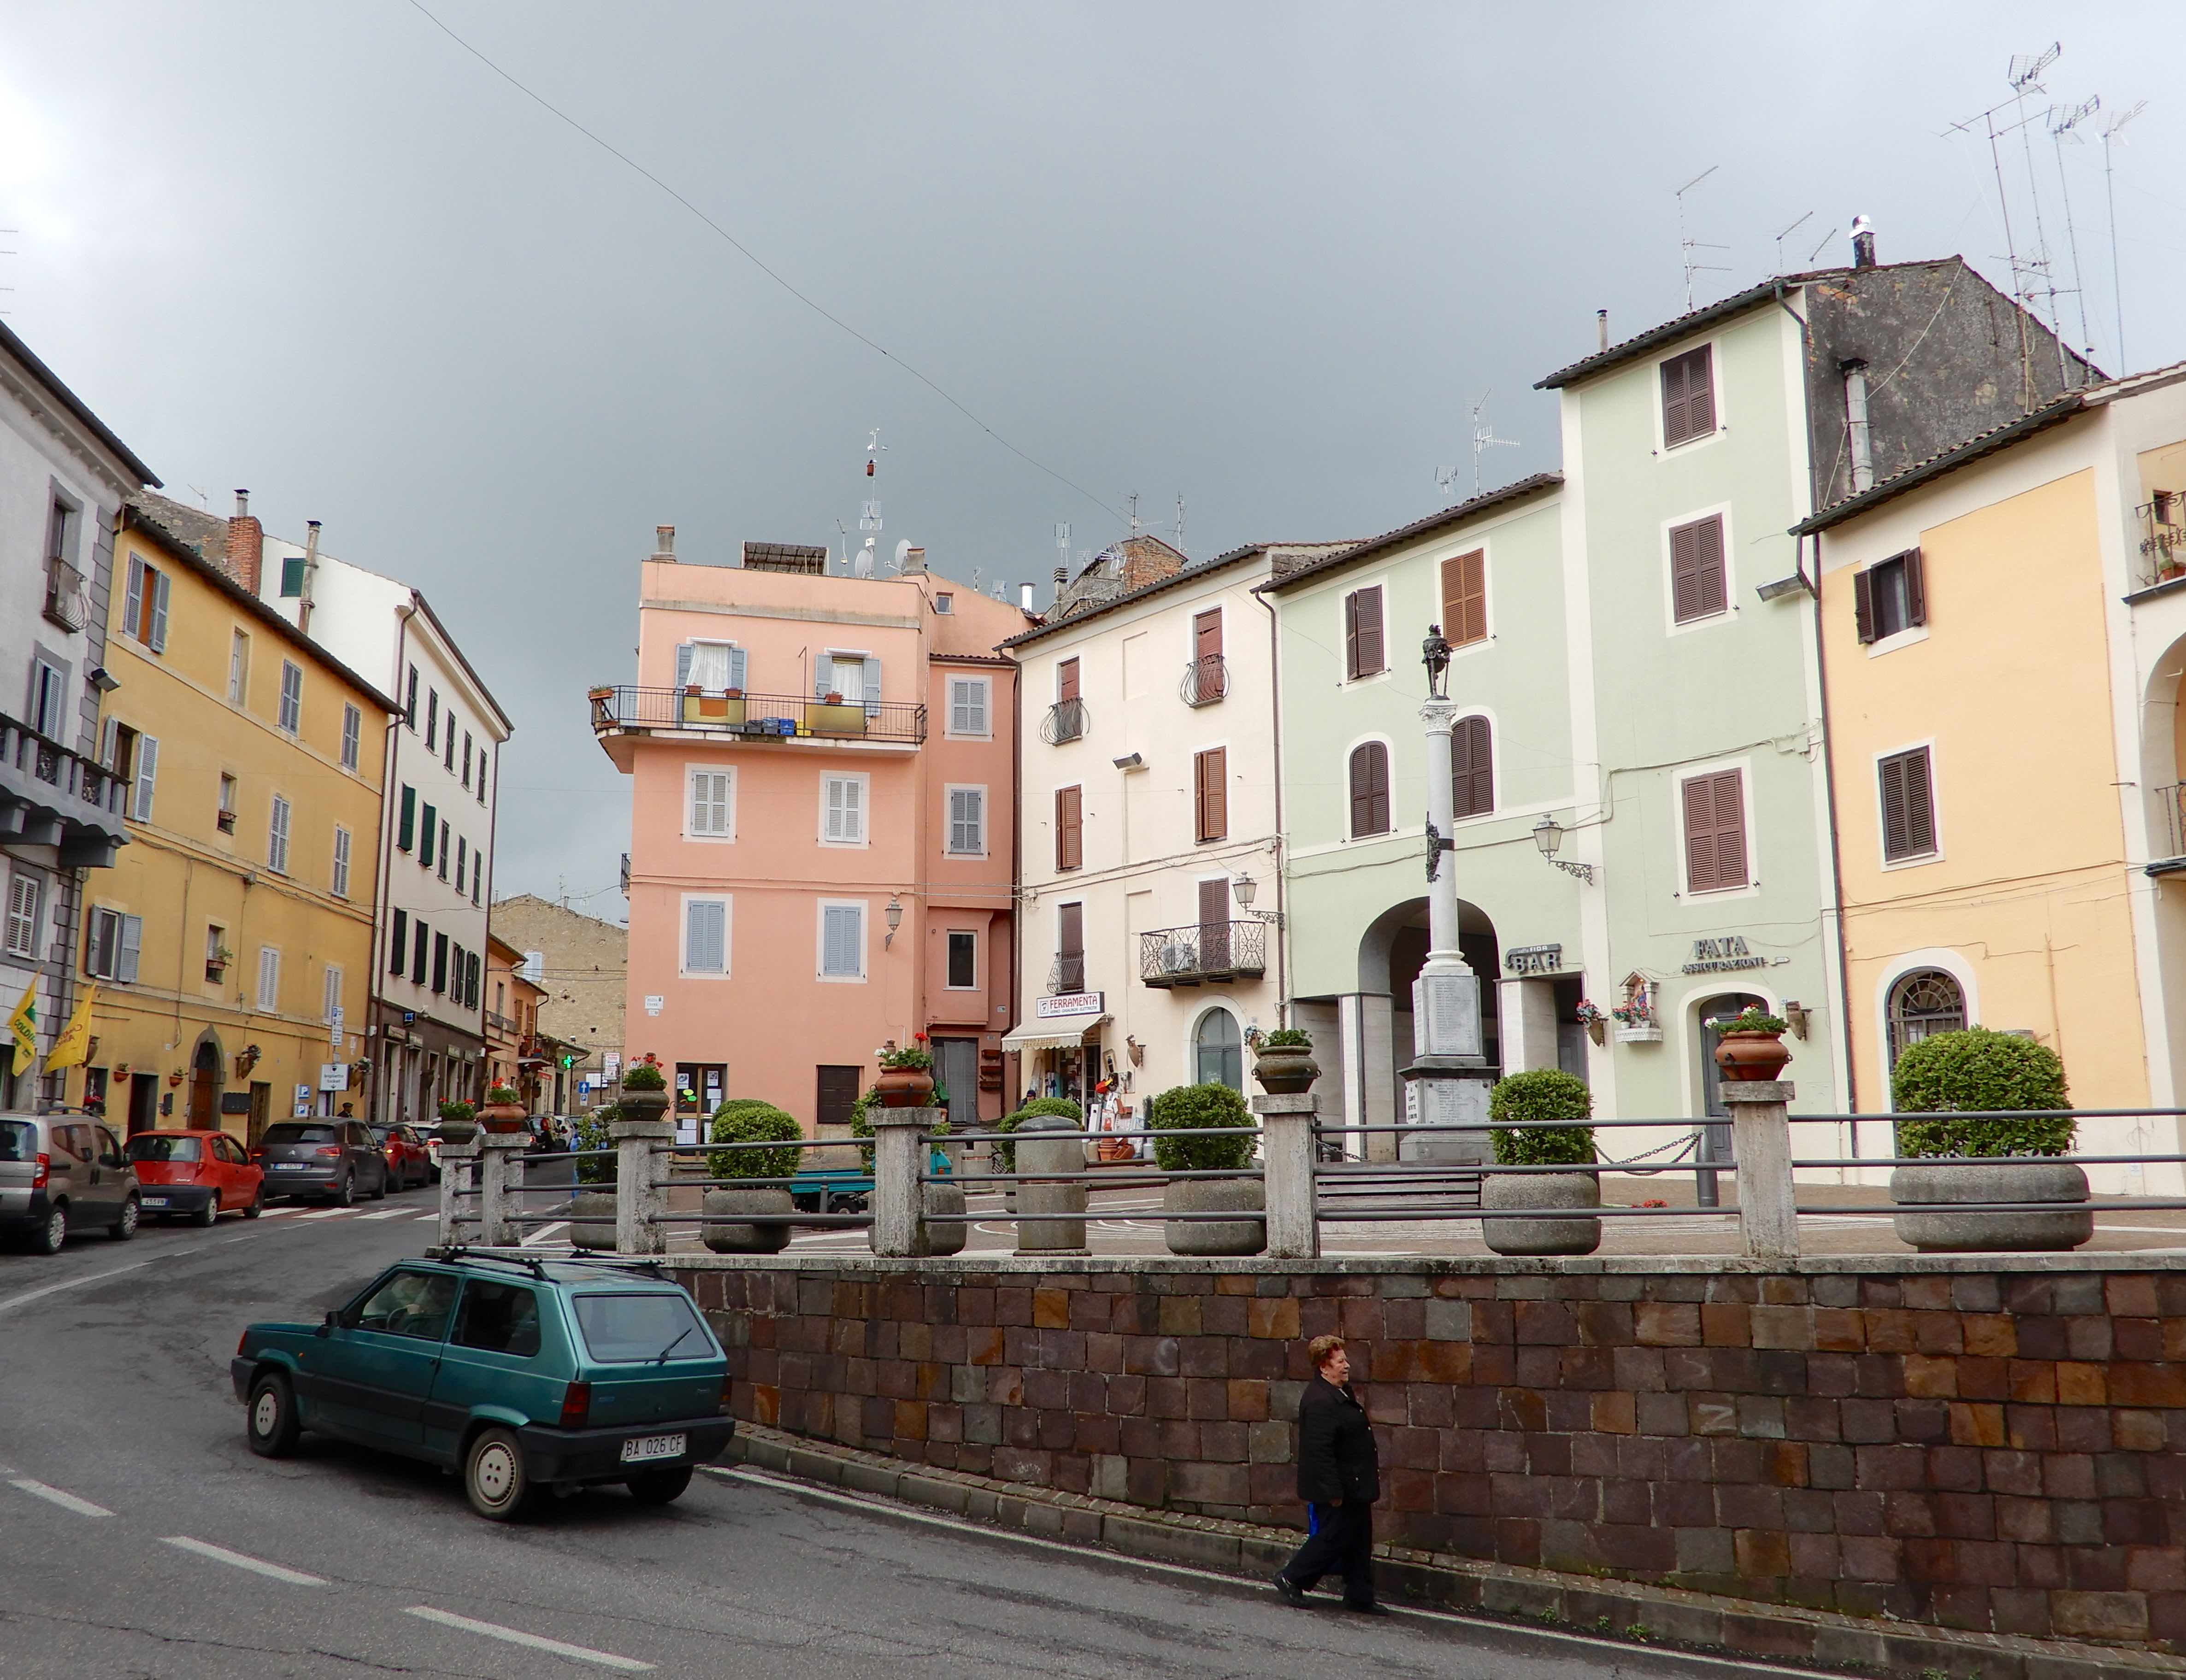 6.Piazza Cavour